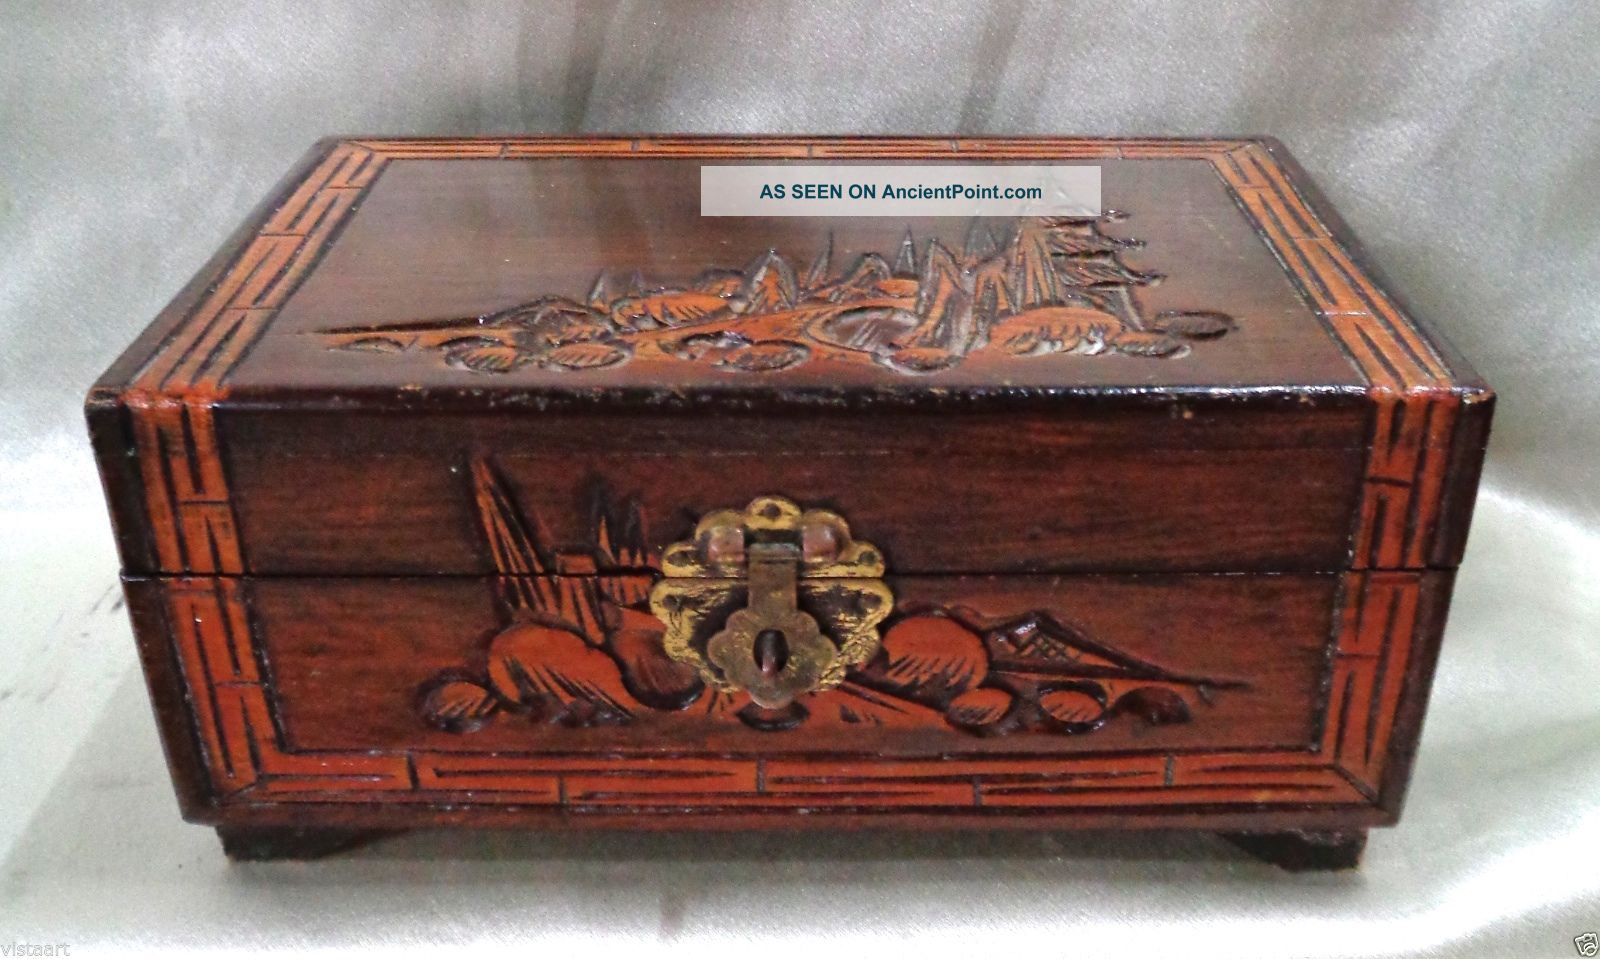 Chinese Antique Wooden Carved Jewelry Box W/ Oriental Landscape Designs - 4x8x5